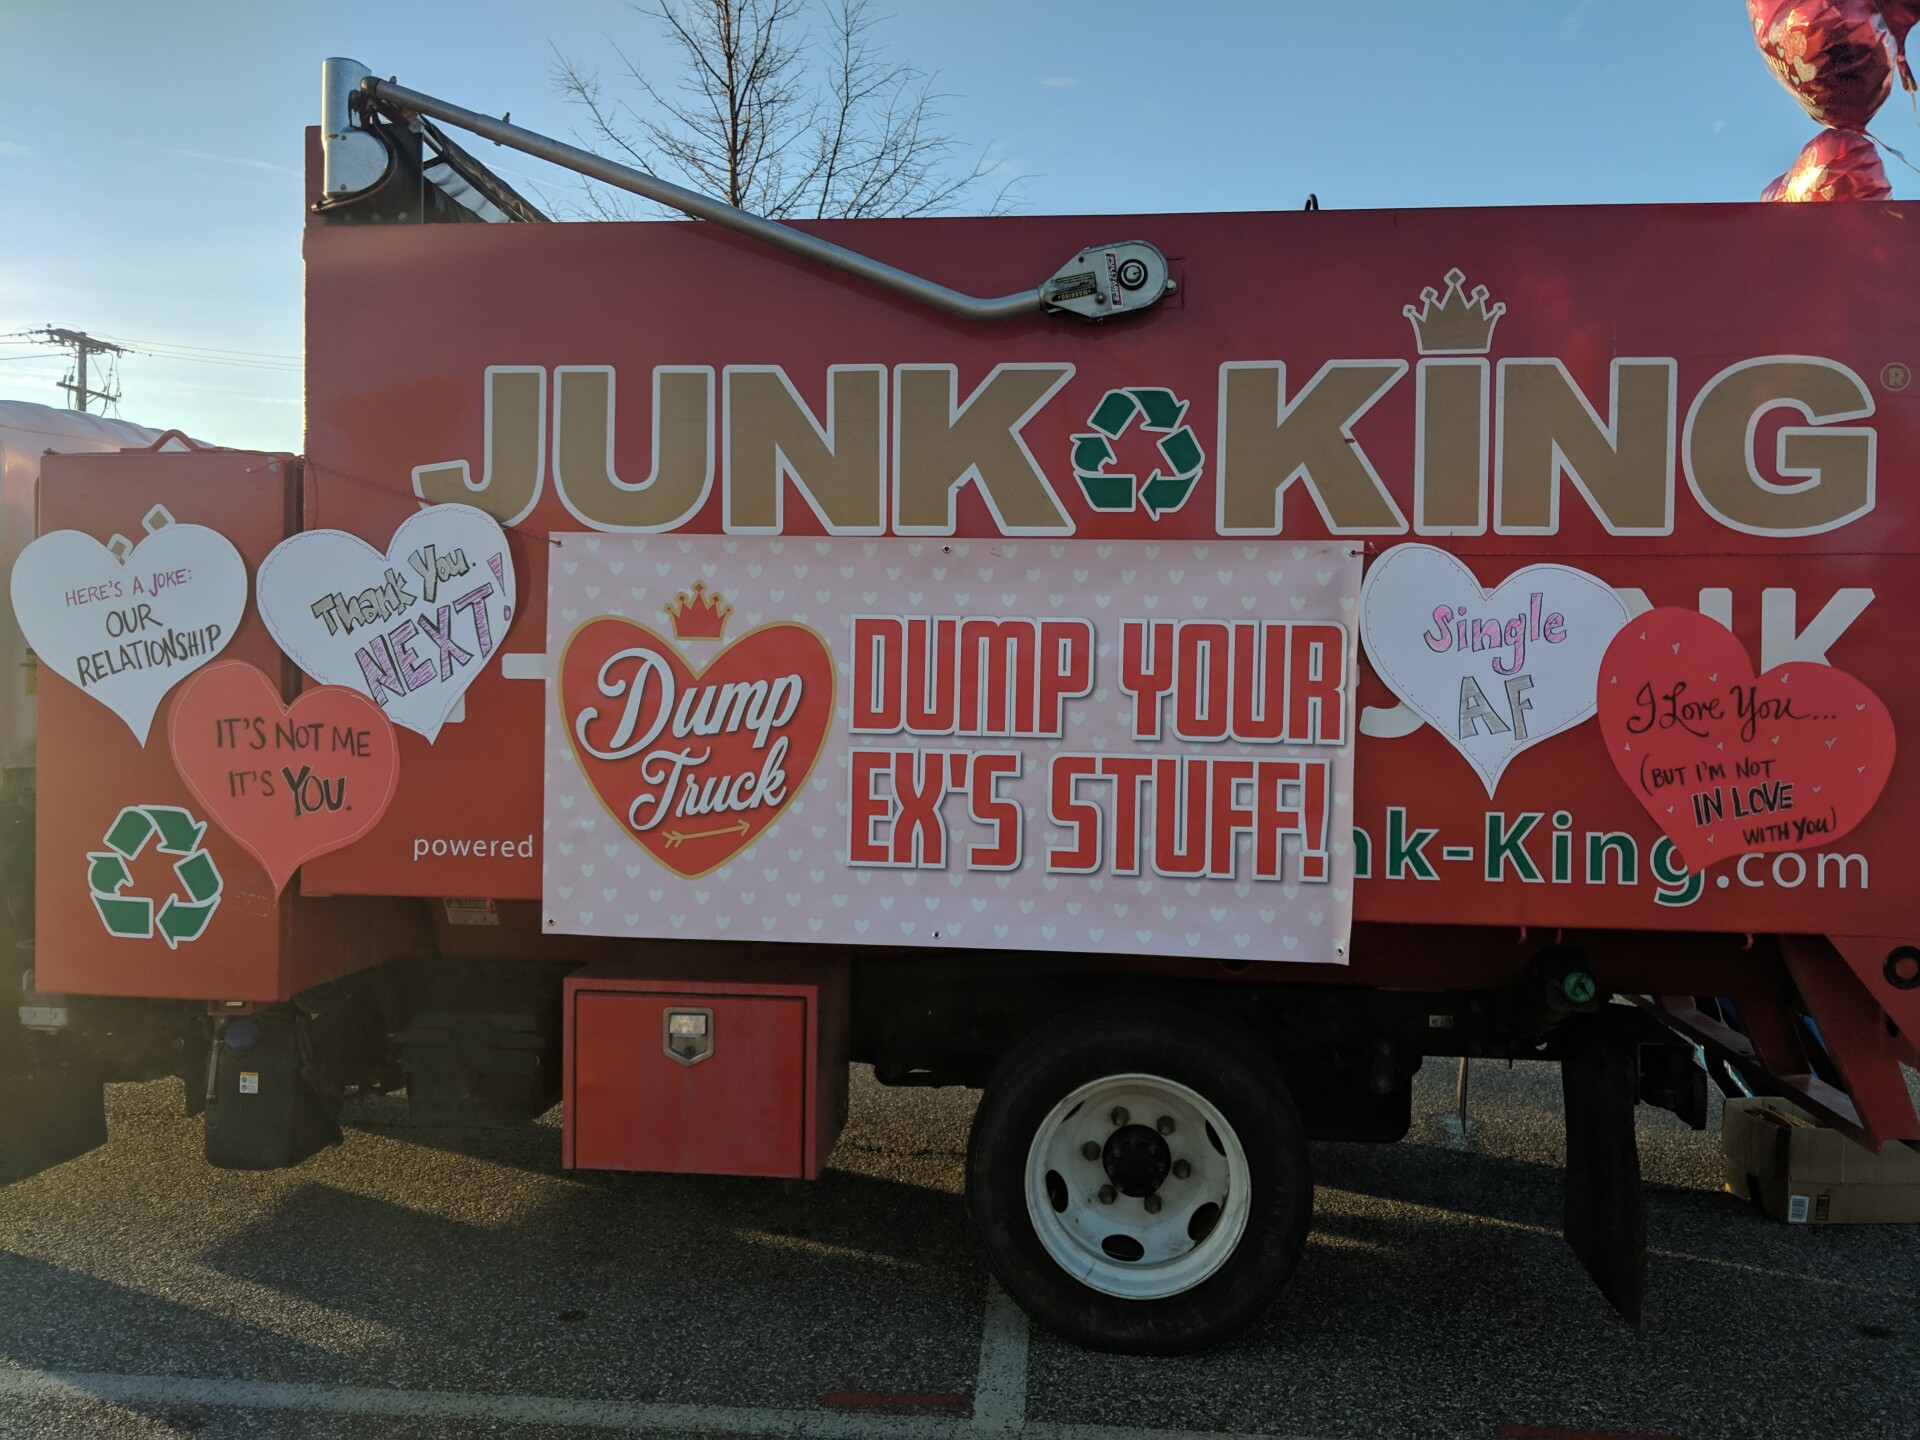 PHOTOS: Junk King helps brokenhearted Baltimoreans this